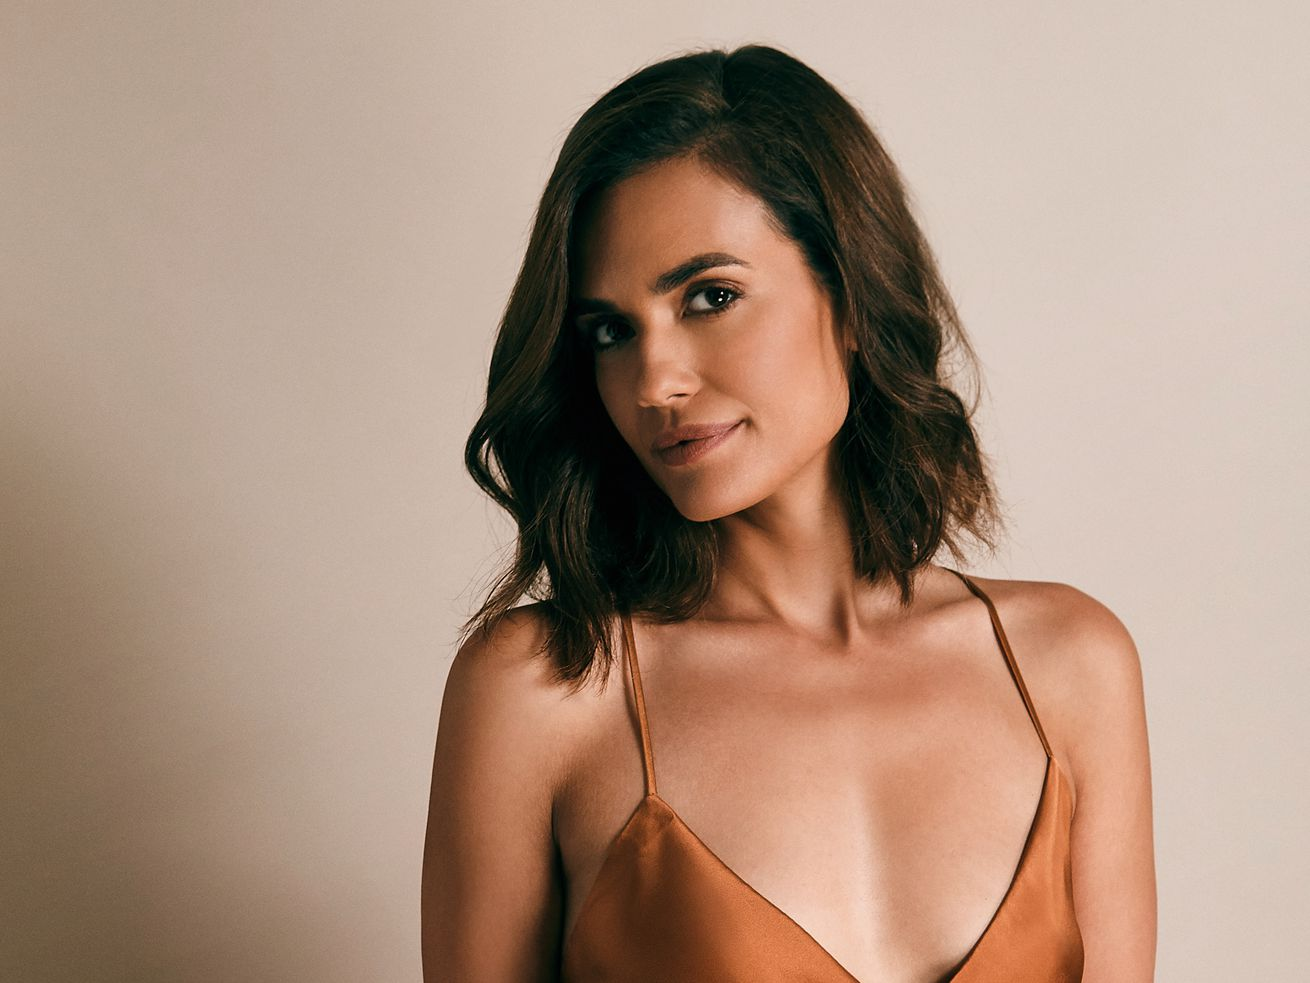 """Torrey DeVitto who stars as Dr. Natalie Manning on """"Chicago Med"""" is exiting the popular NBC drama series."""